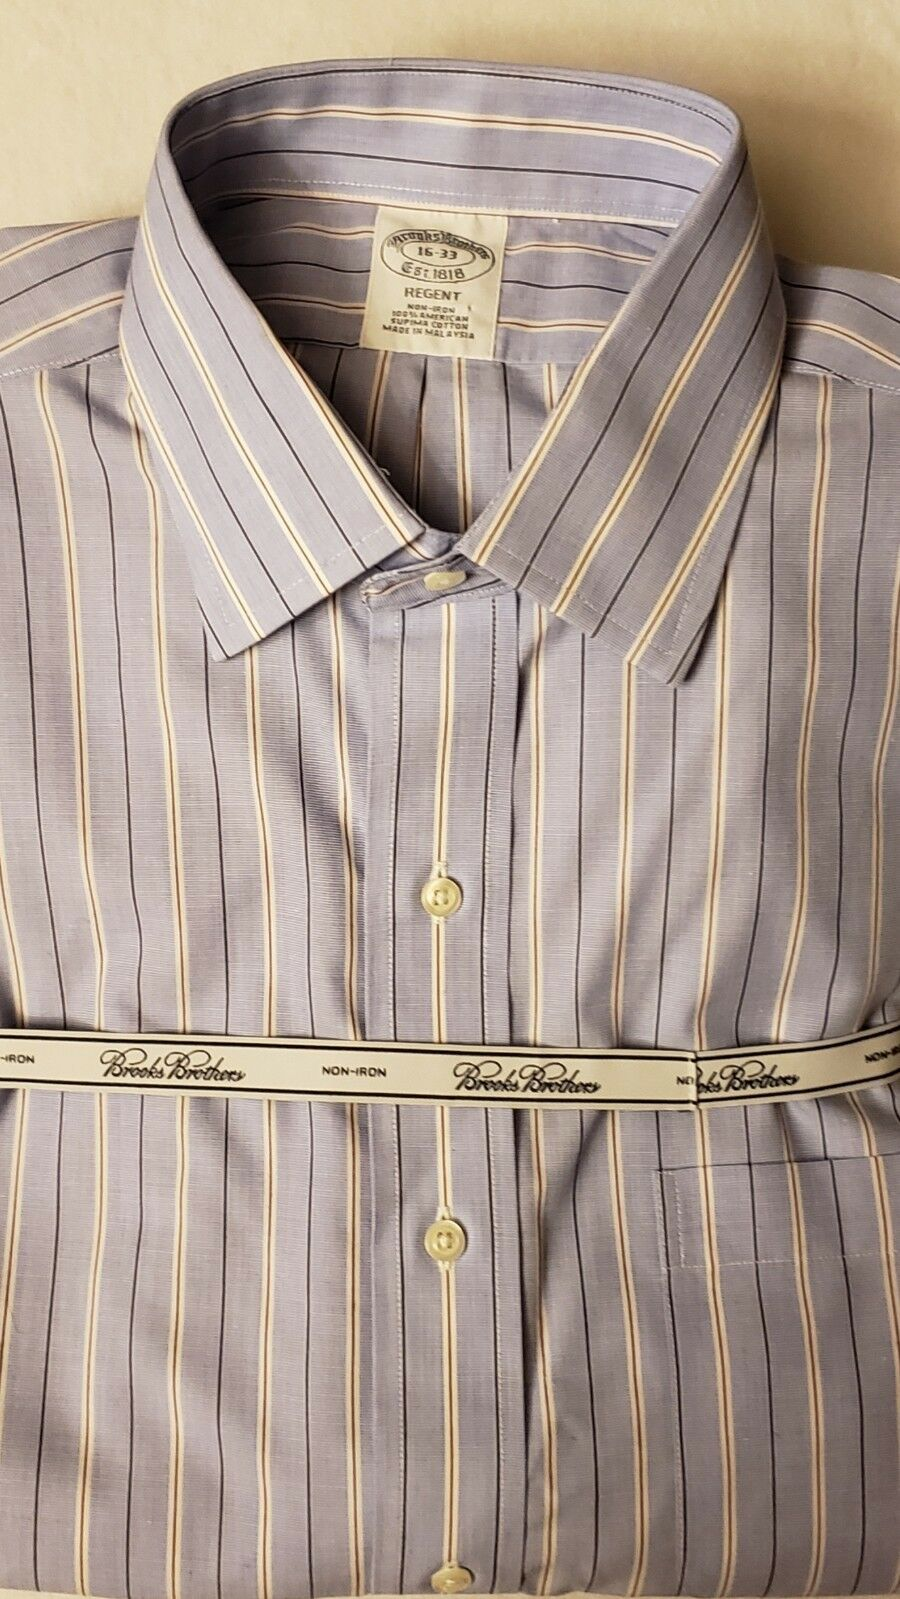 NWT Brooks Bredhers Regent Mens Lt bluee Stripe Supima Dress Shirt 15 1 2 - 34